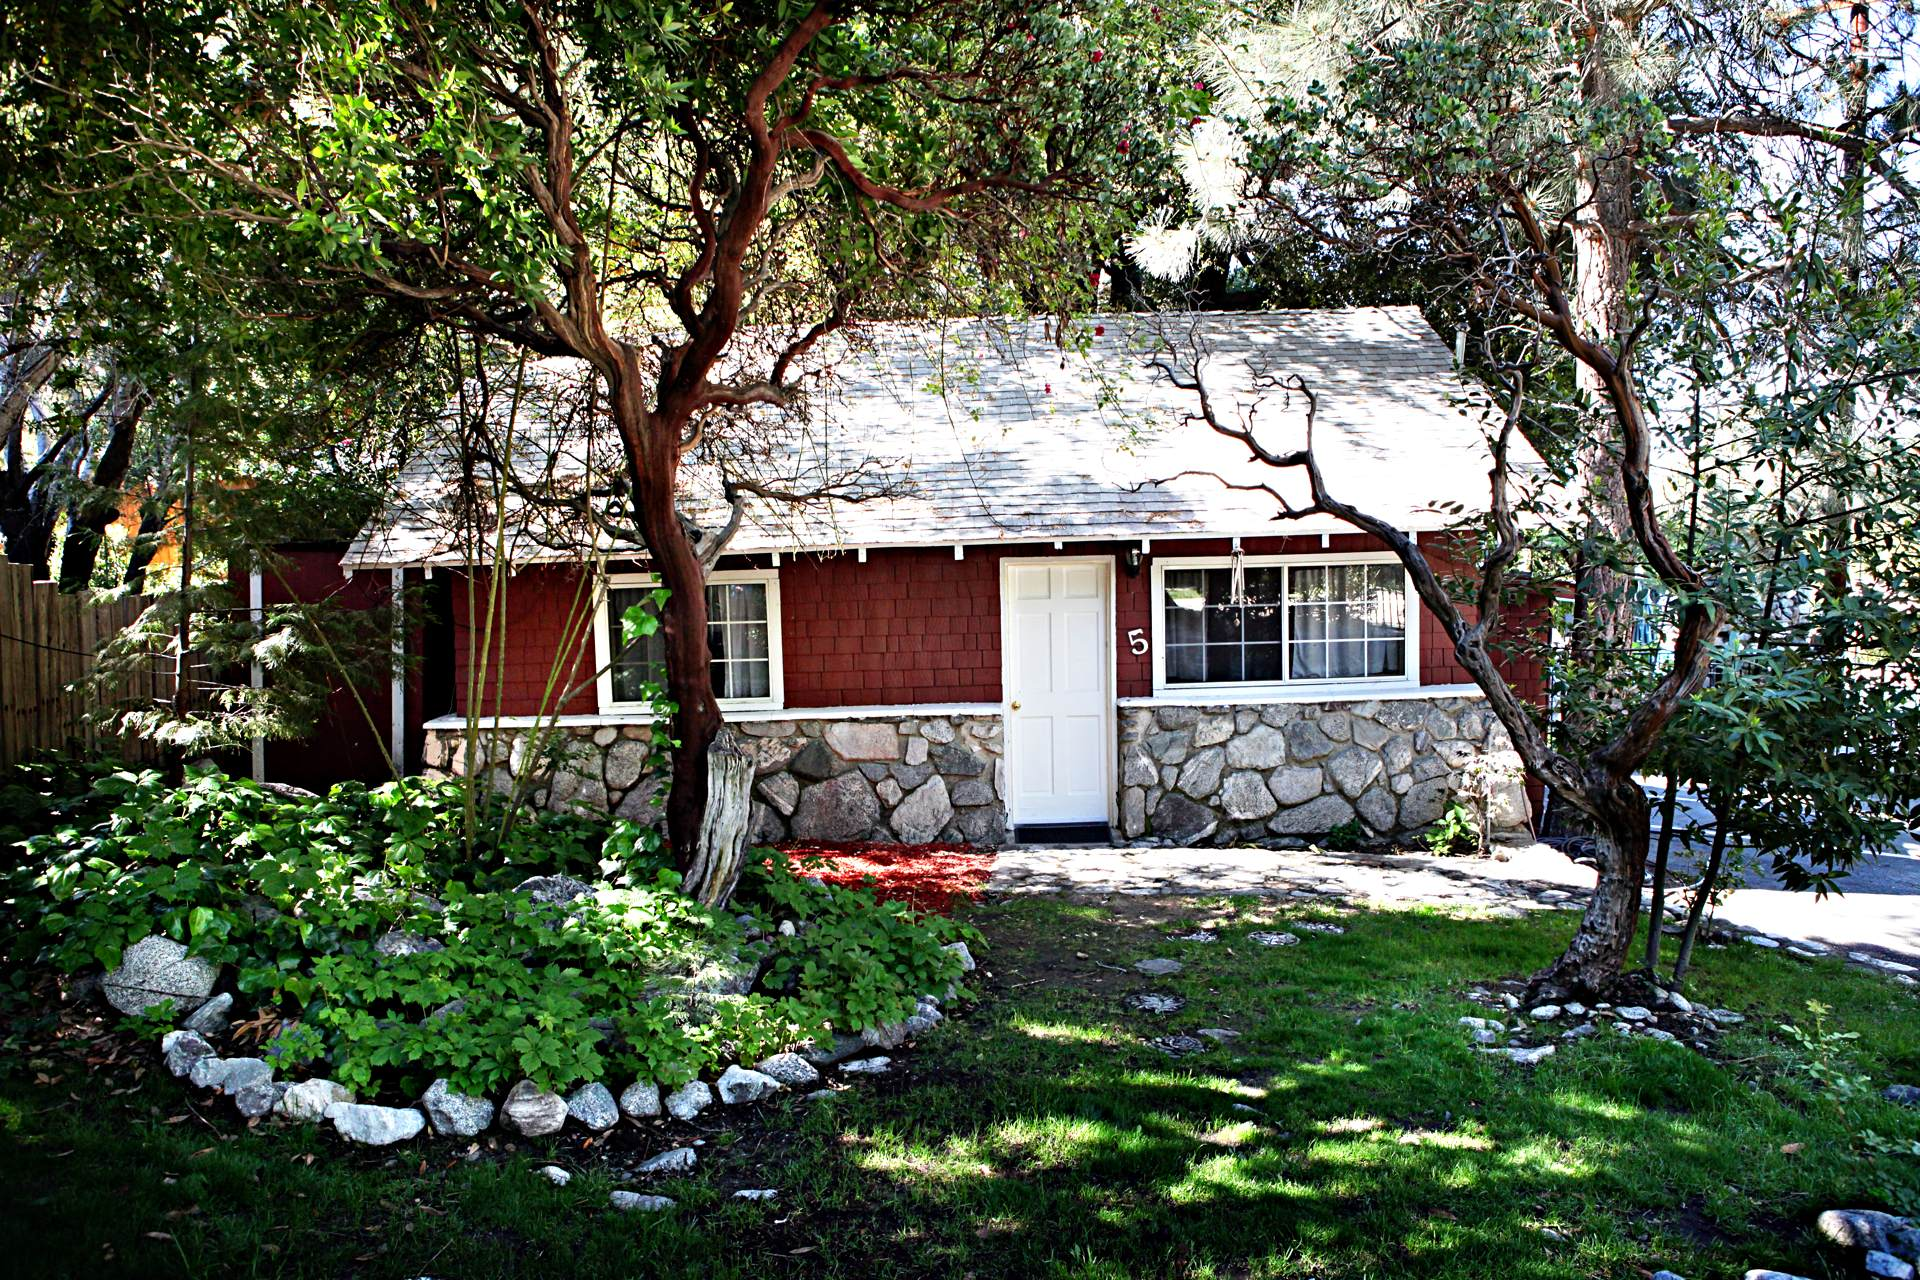 angeles in propertyprof beautiful tiny for houses ideas blog california design sale cabins los